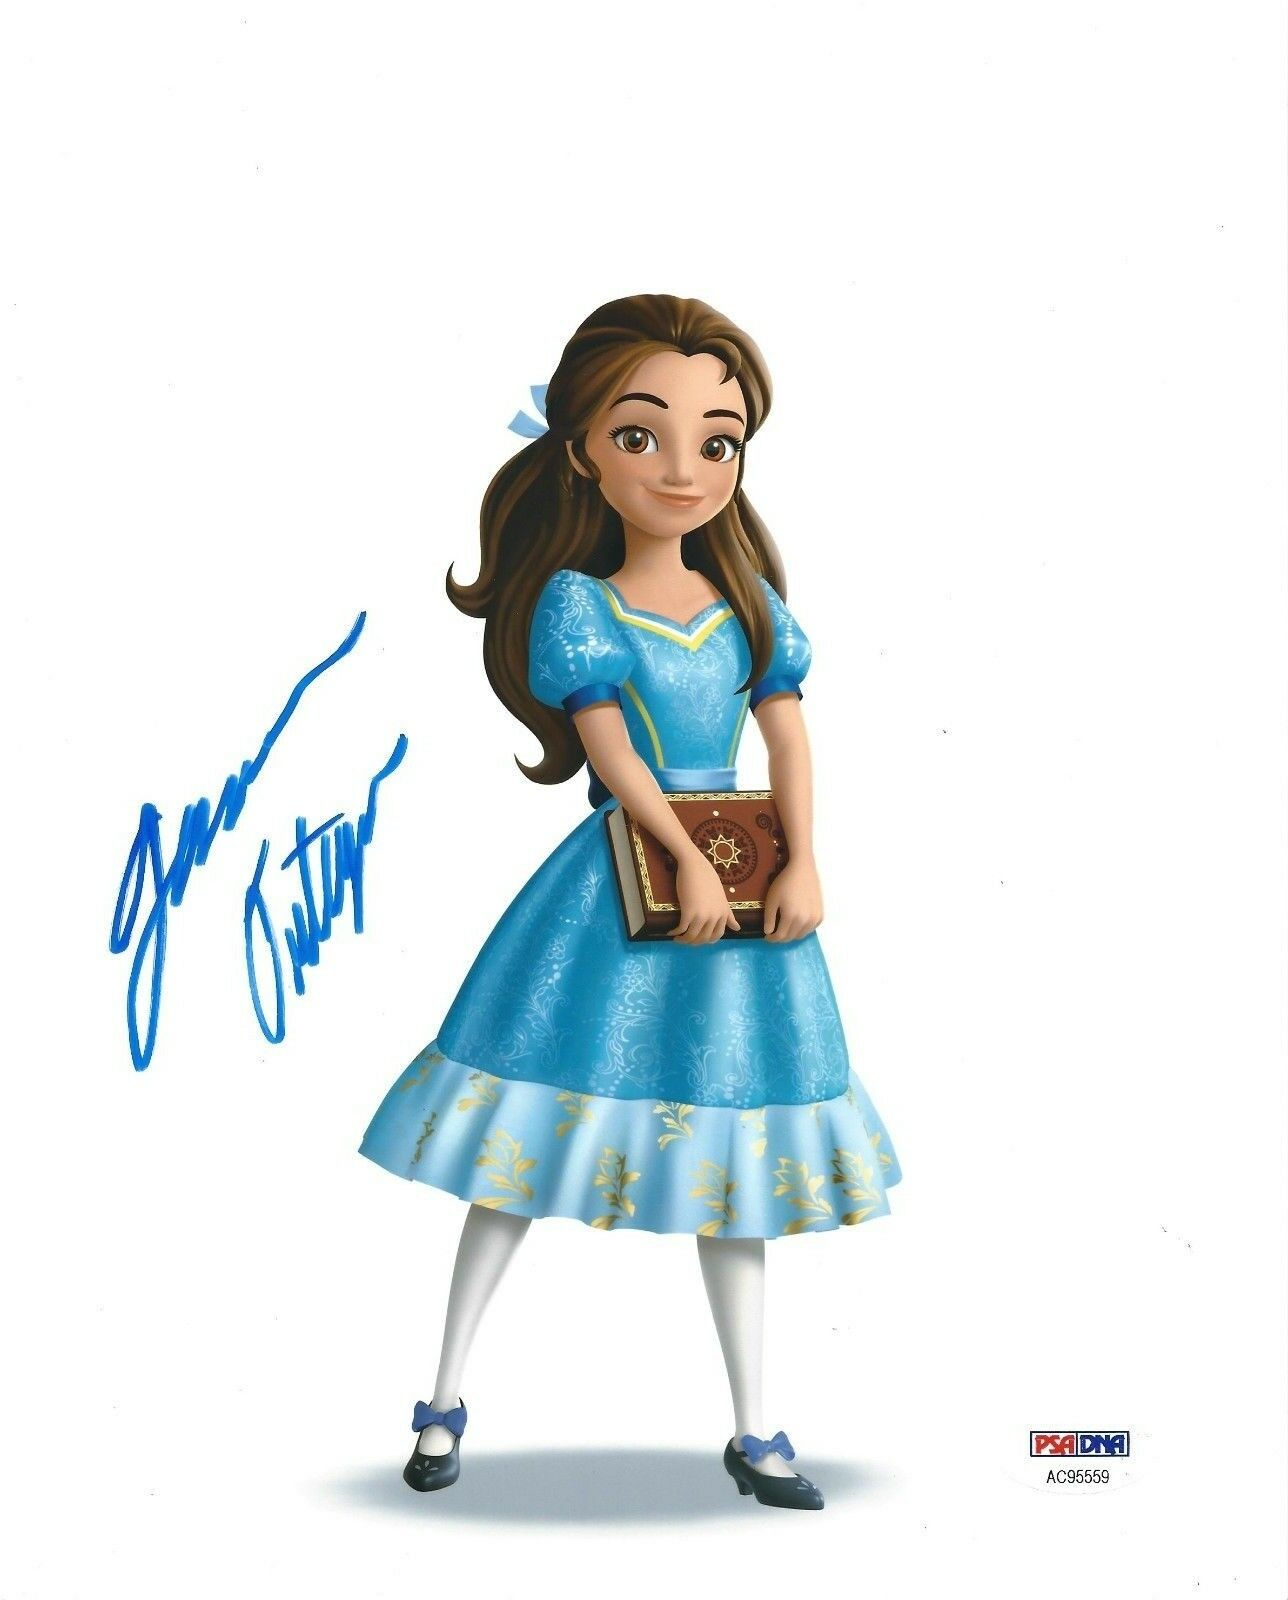 Jenna Ortega Signed 'Elena of Avalor' 8x10 Photo *Princess Isabel PSA AC95559